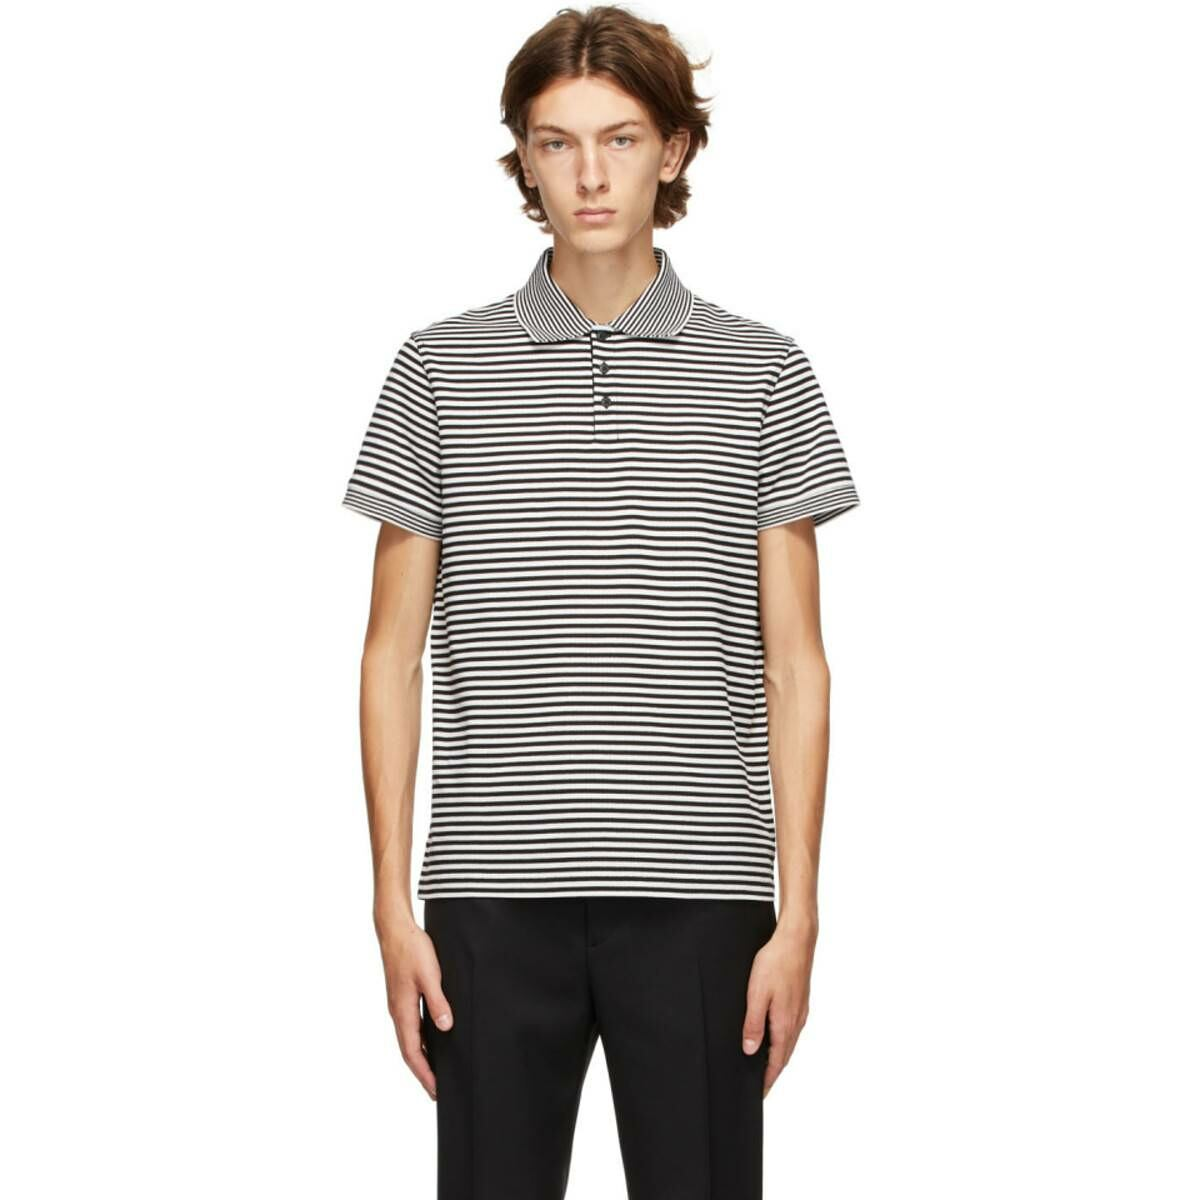 Saint Laurent Black and White Striped Polo Ssense USA MEN Men FASHION Mens POLOSHIRTS